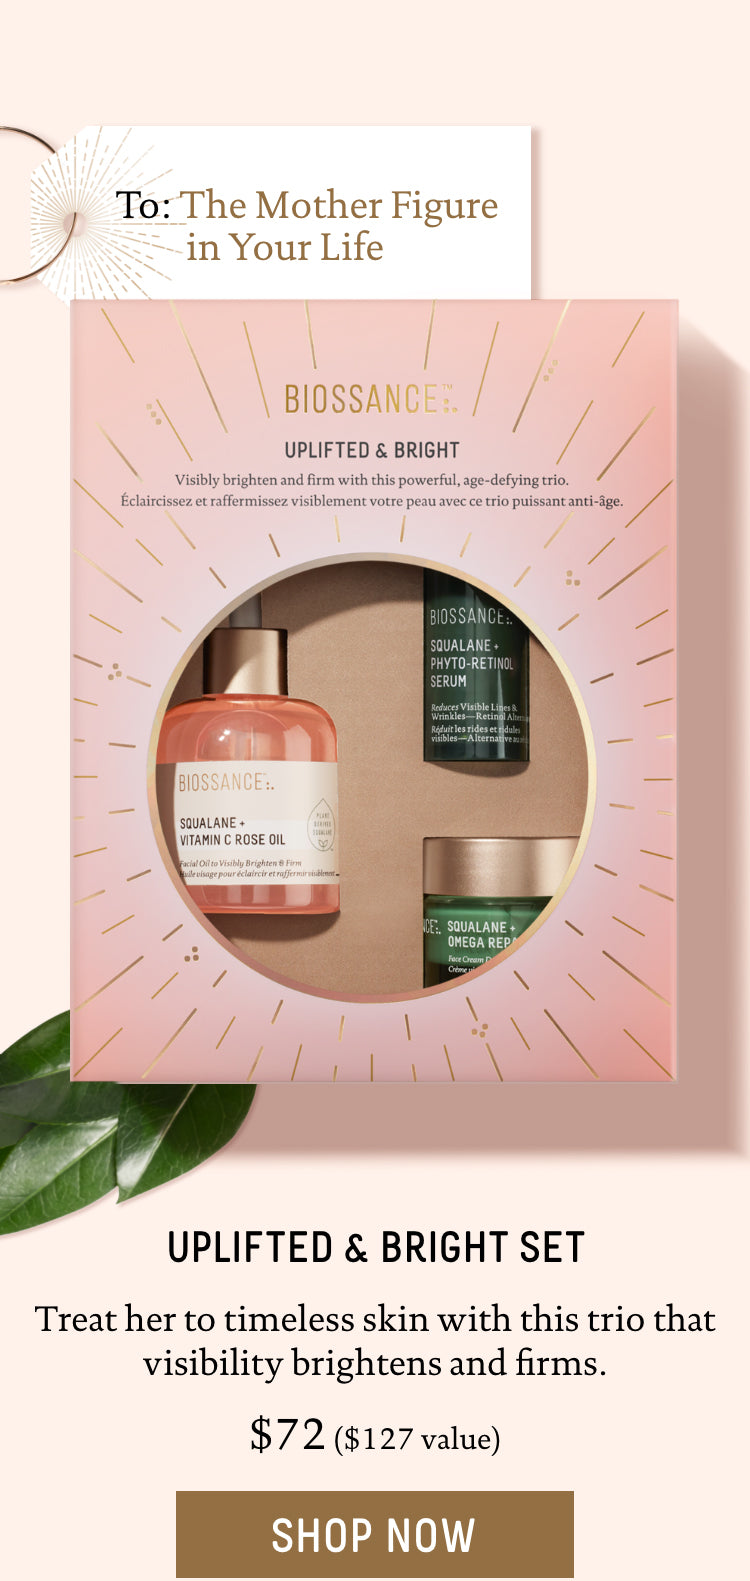 To: The Mother Figure in Your Life. Uplifted & Bright Set. Treat her to timeless skin with this trio that visibly brightens and firms. $72, $127 value. Call to action: Shop Now.